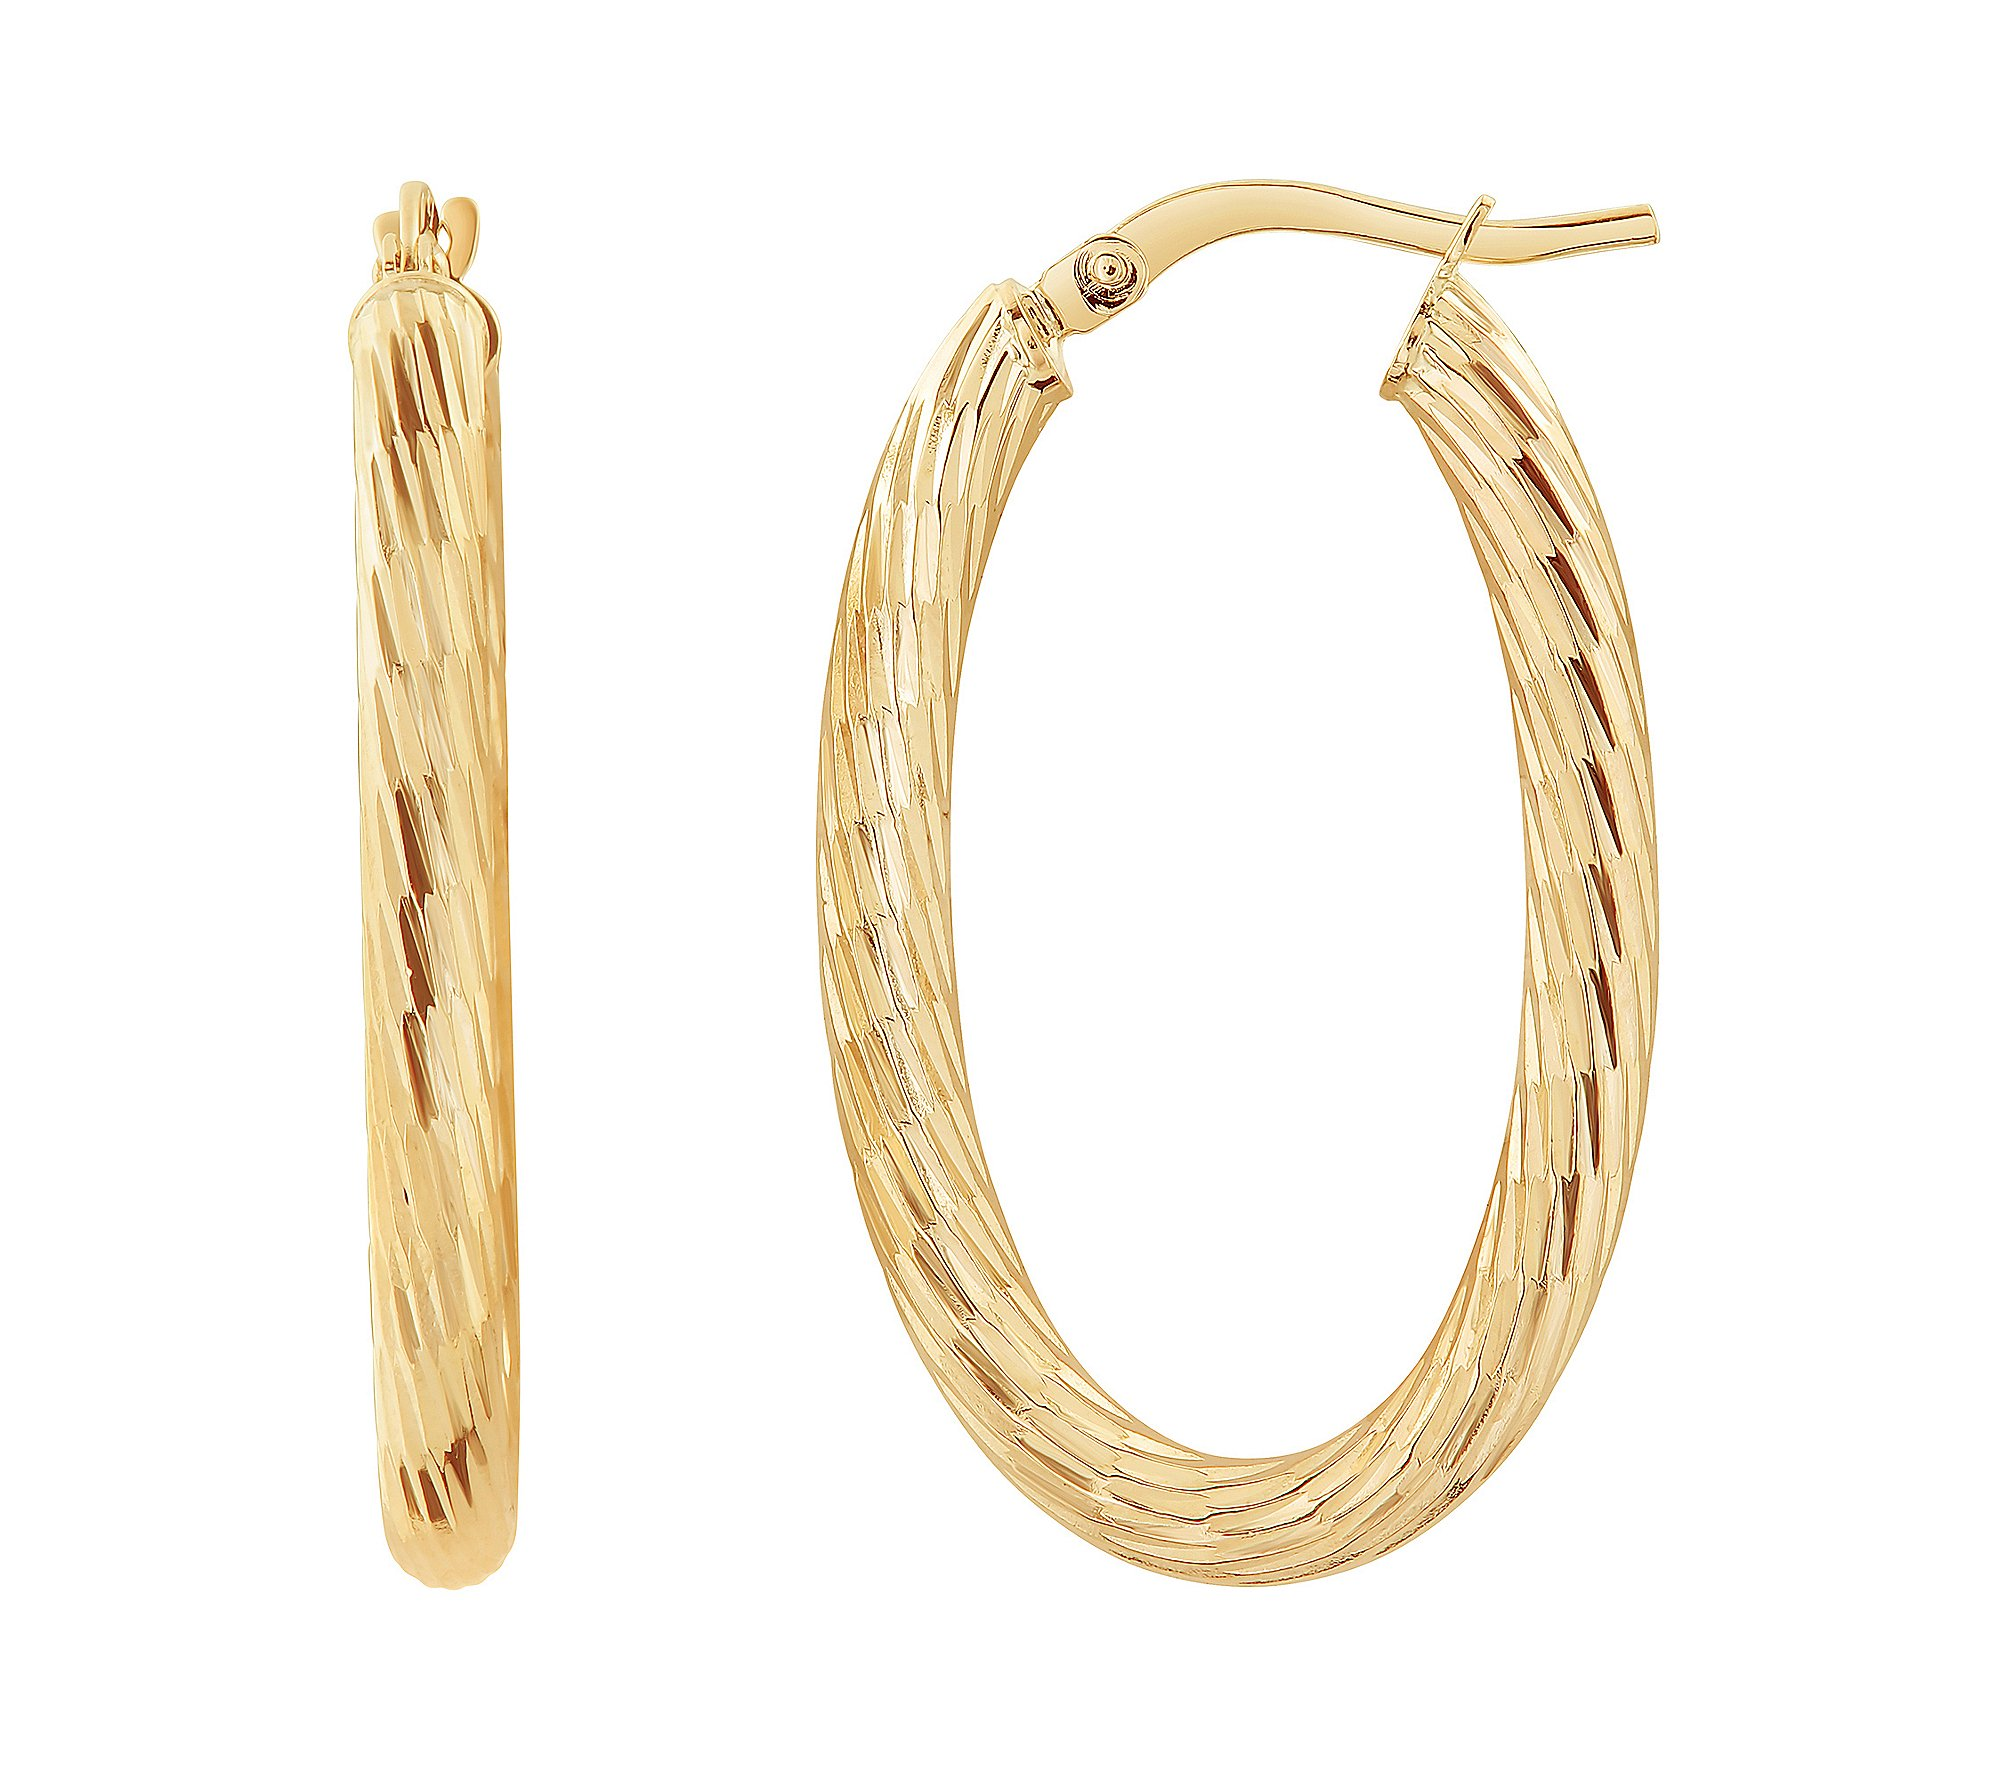 14K Yellow Gold Polished Diamond Cut 3MM Oval Hoop Earrings